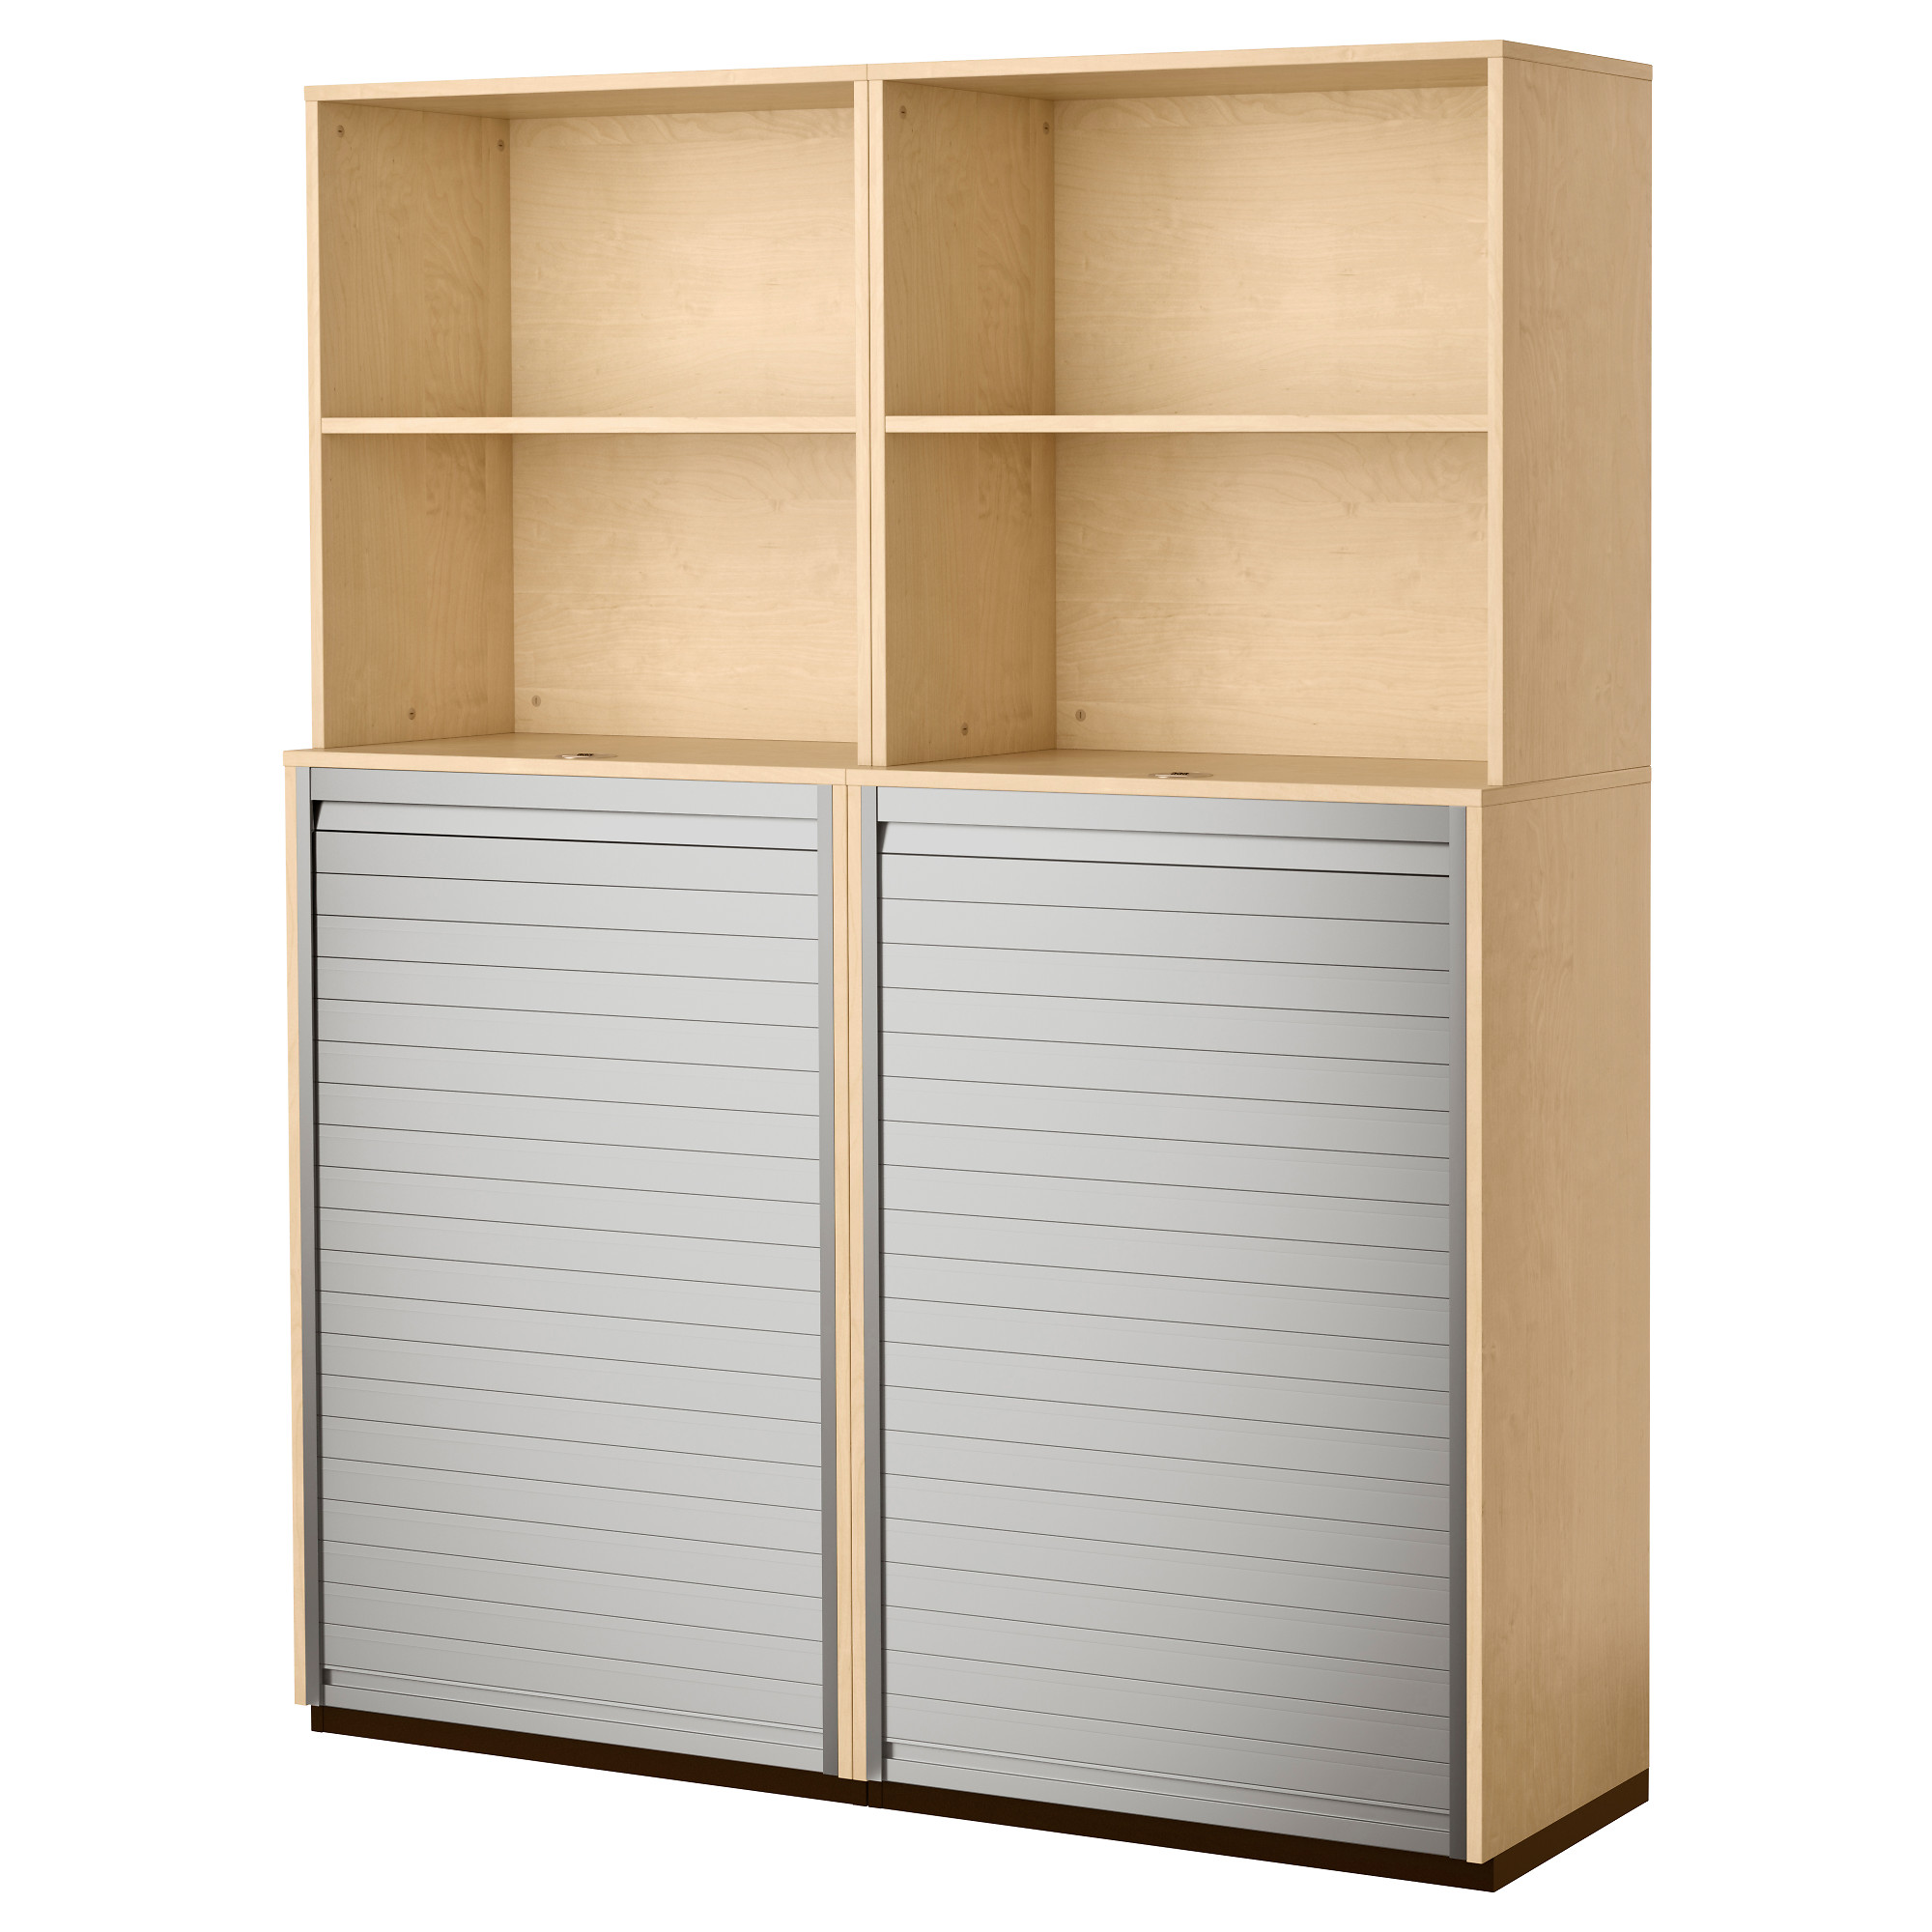 Ikea Home Office Galant galant storage combination with roll-front - birch veneer, 63x78 3